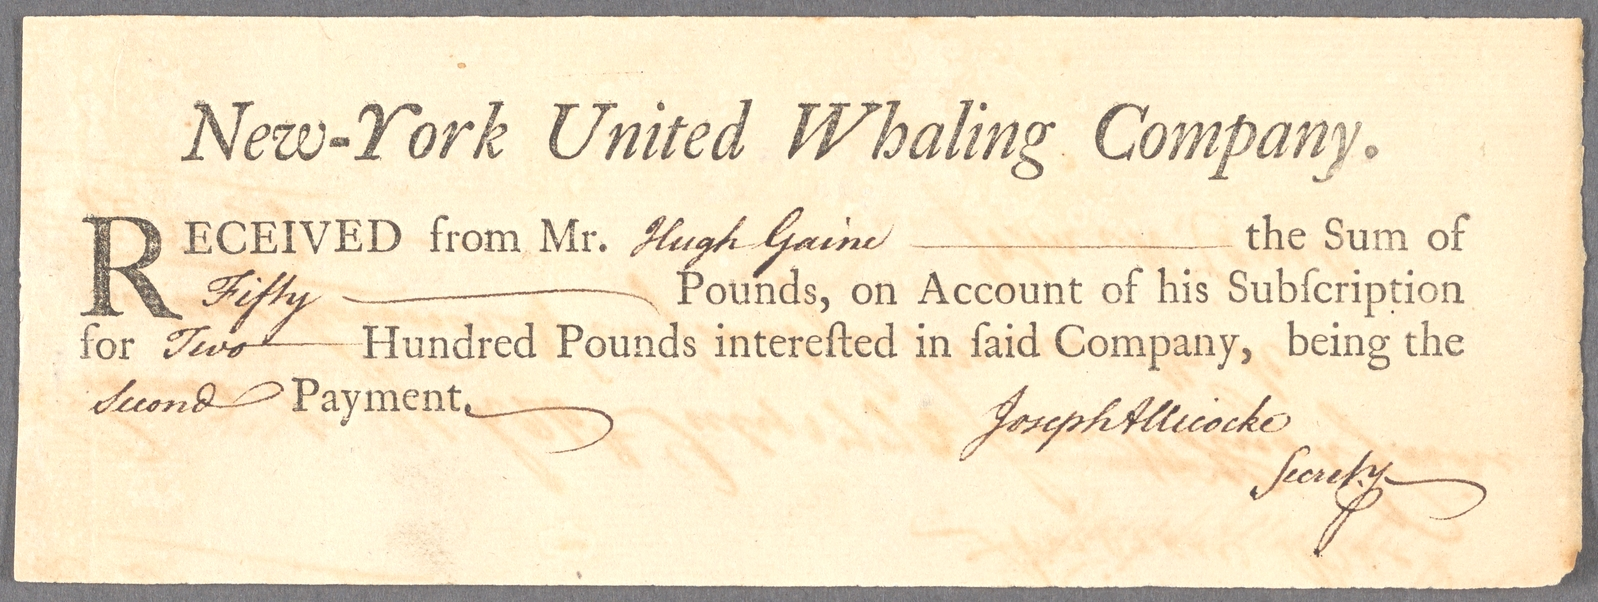 New-York United Whaling Company receipt to Hugh Gaine